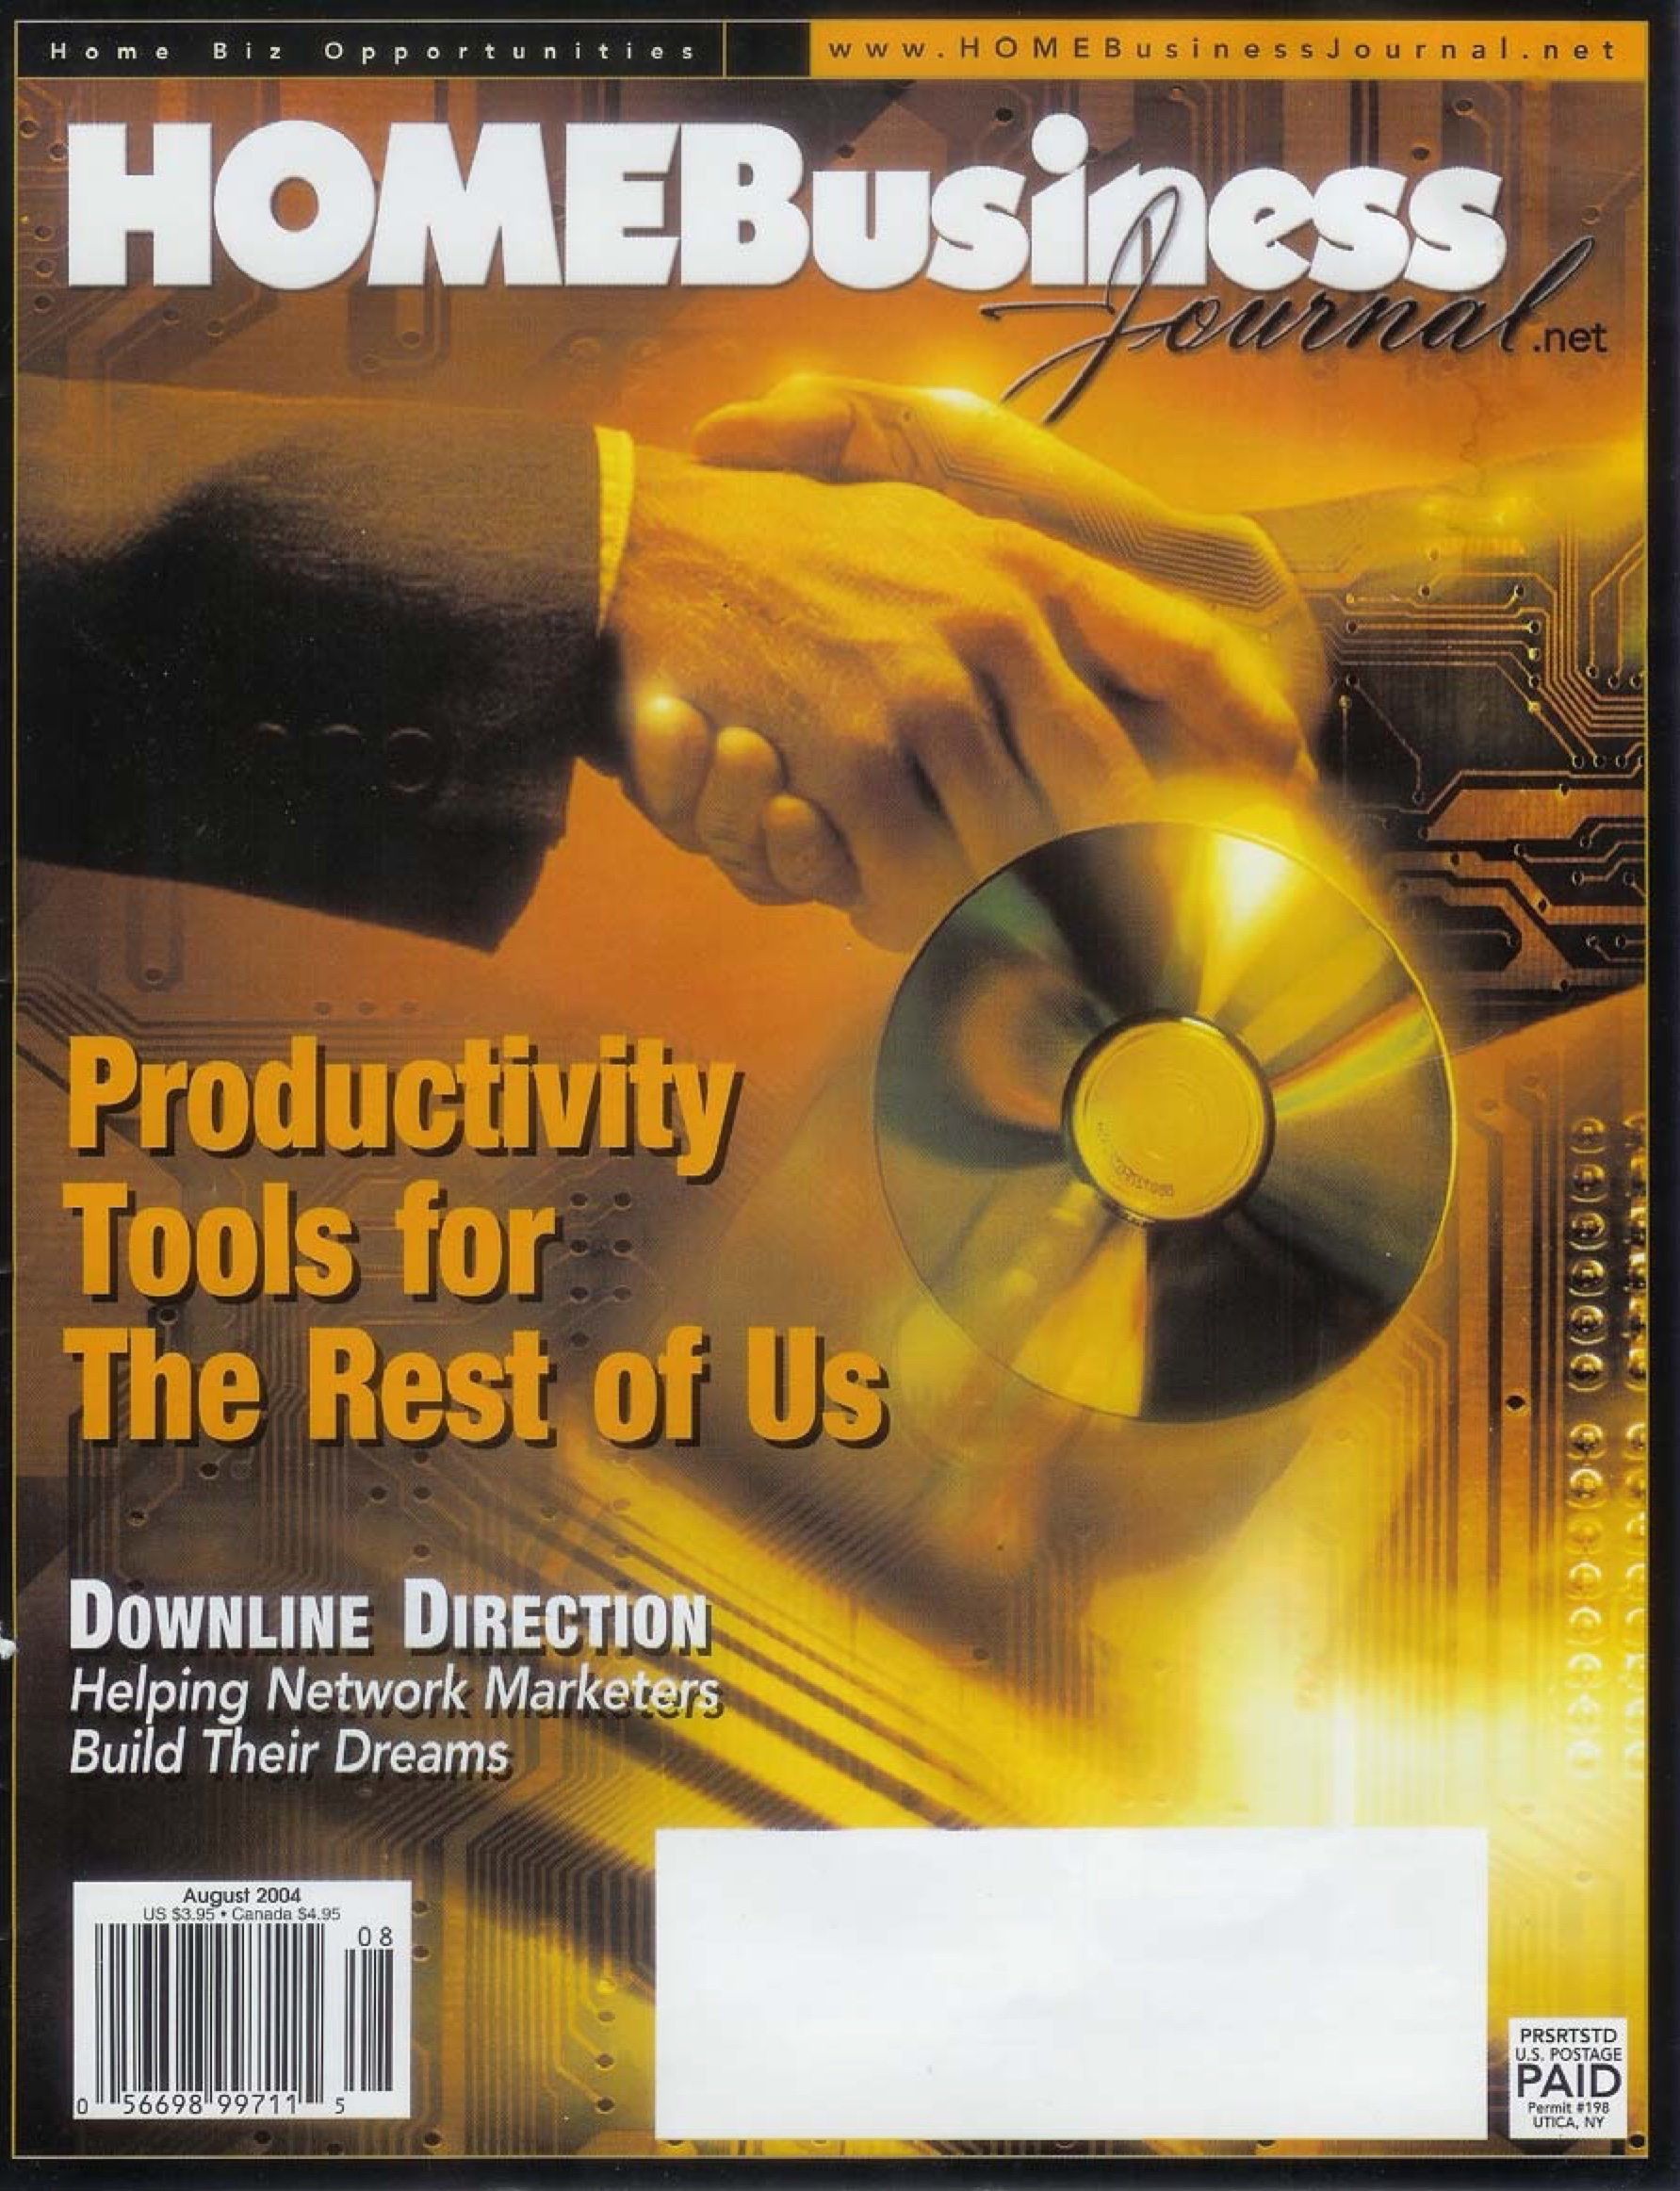 Home Business Journal